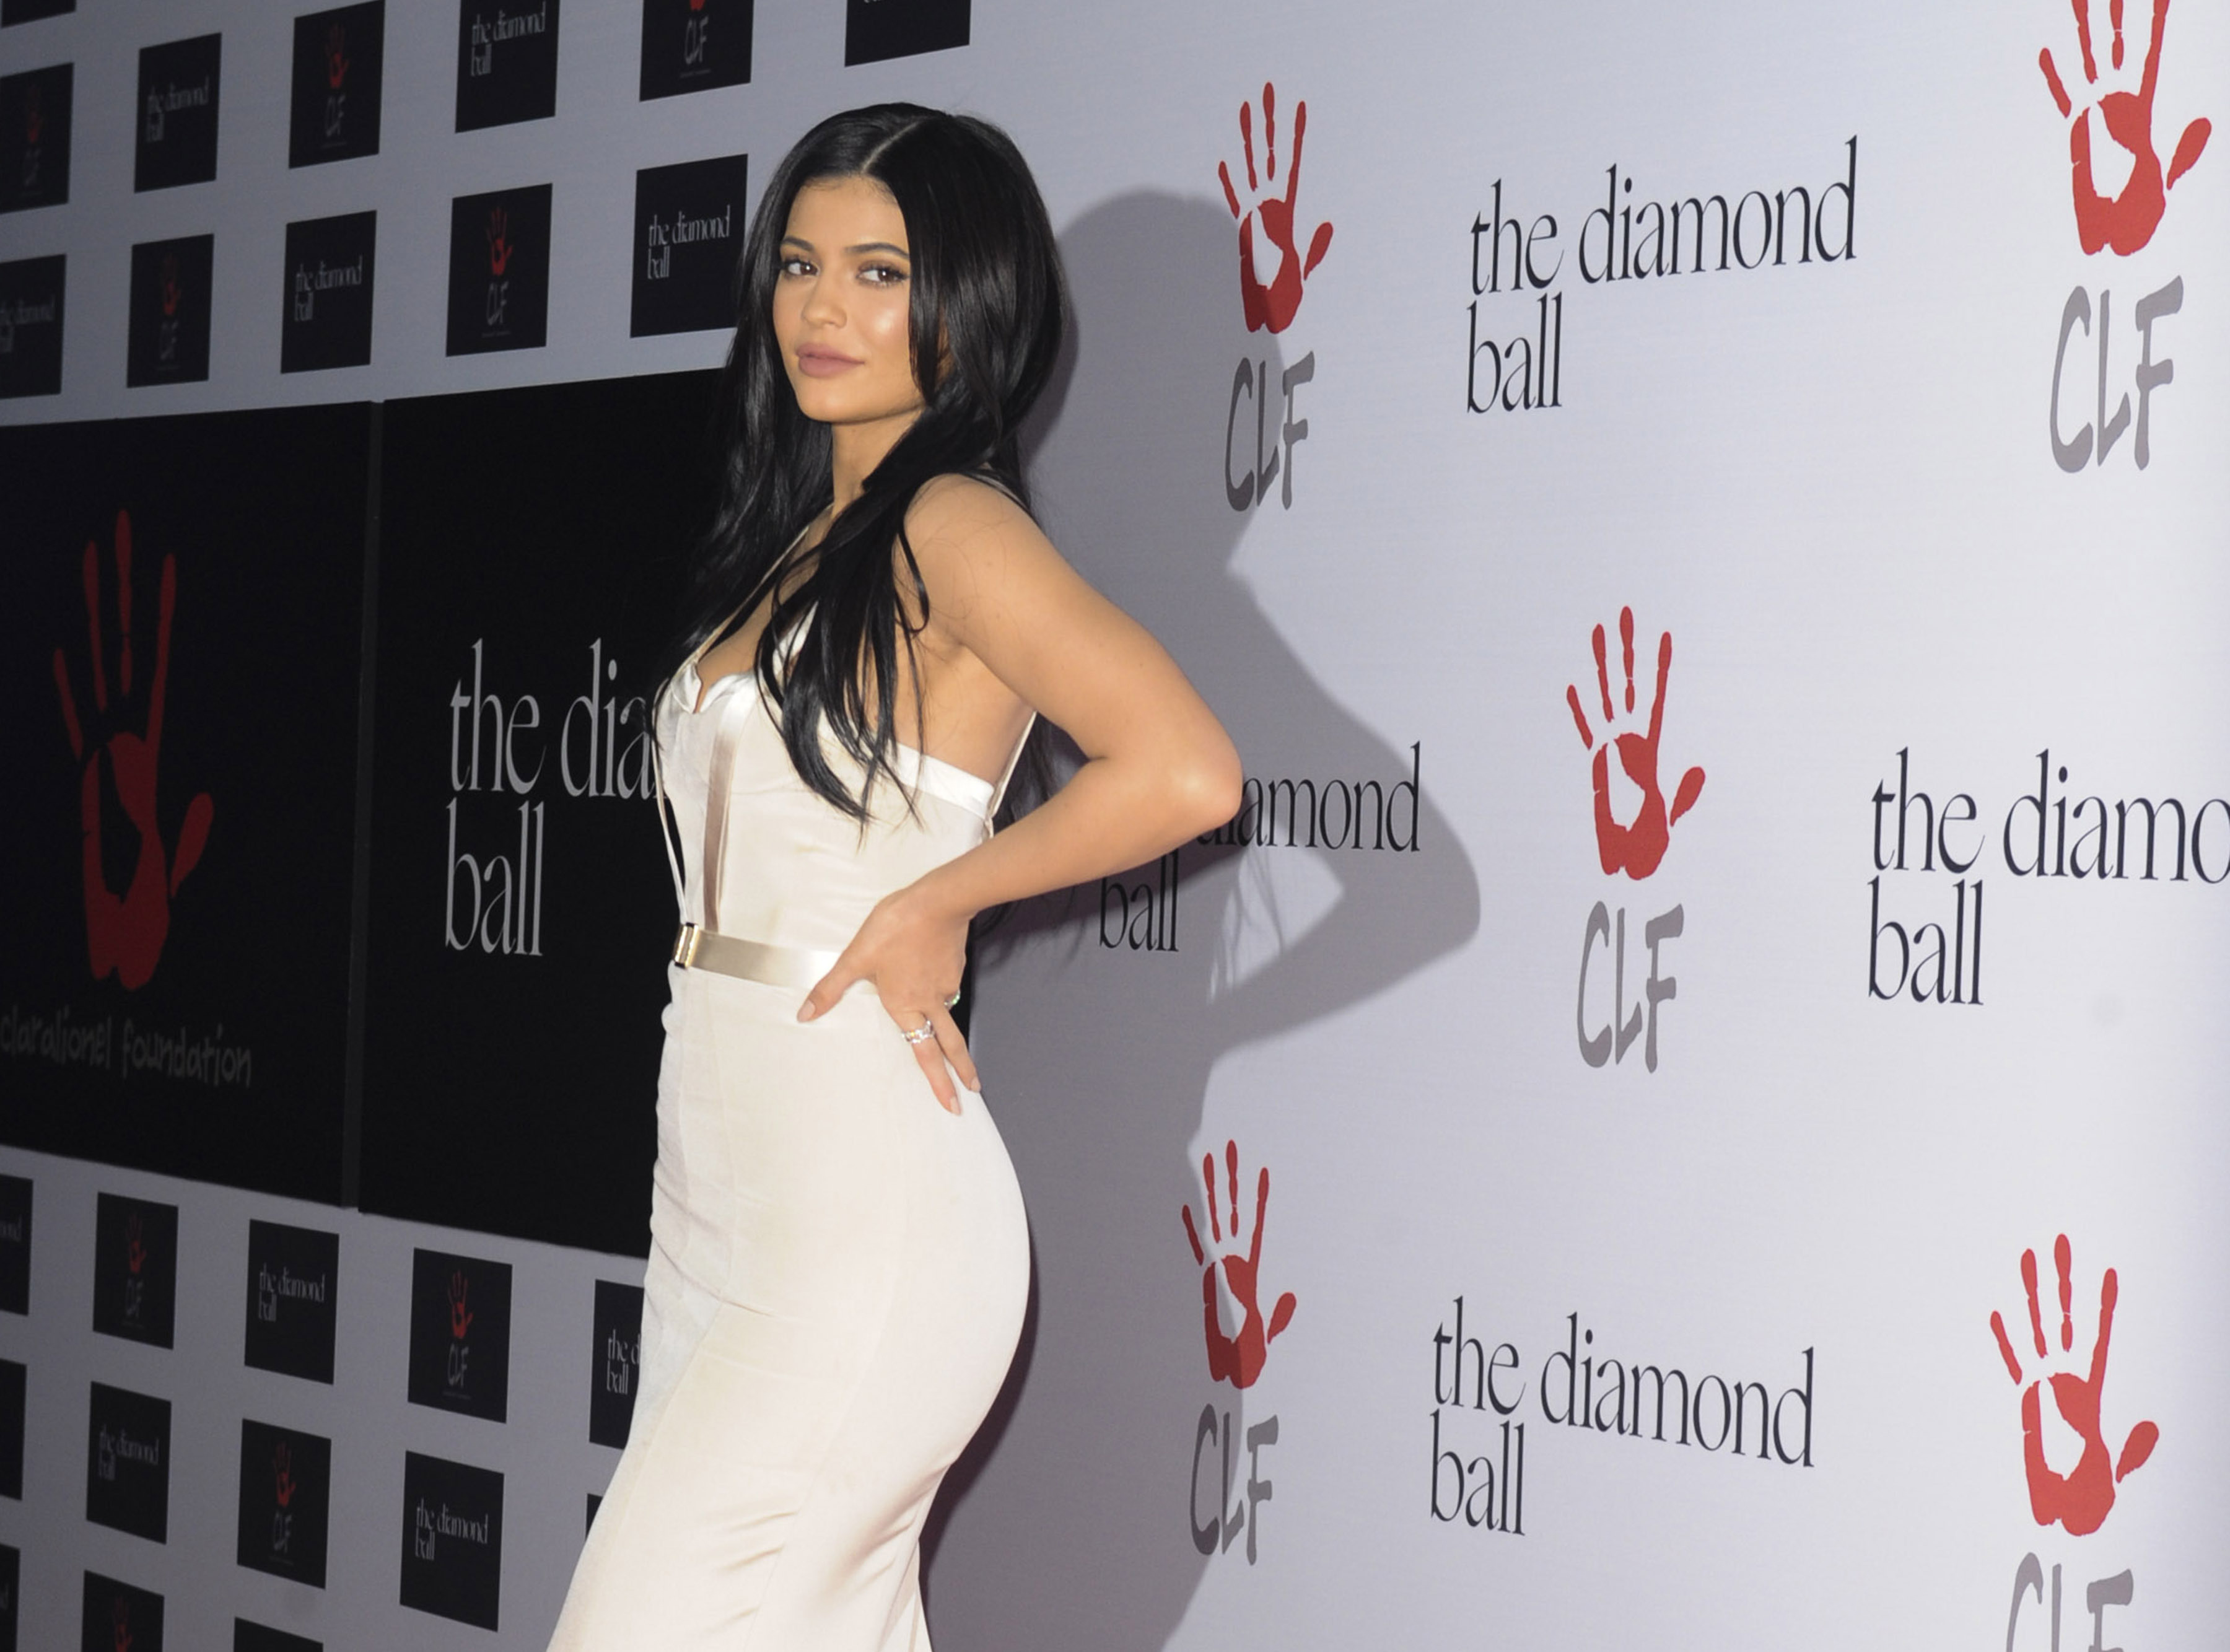 Kylie Jenner's Home-Cooked Meal Bears Striking Resemblance To A Socialite In A Nude Thong